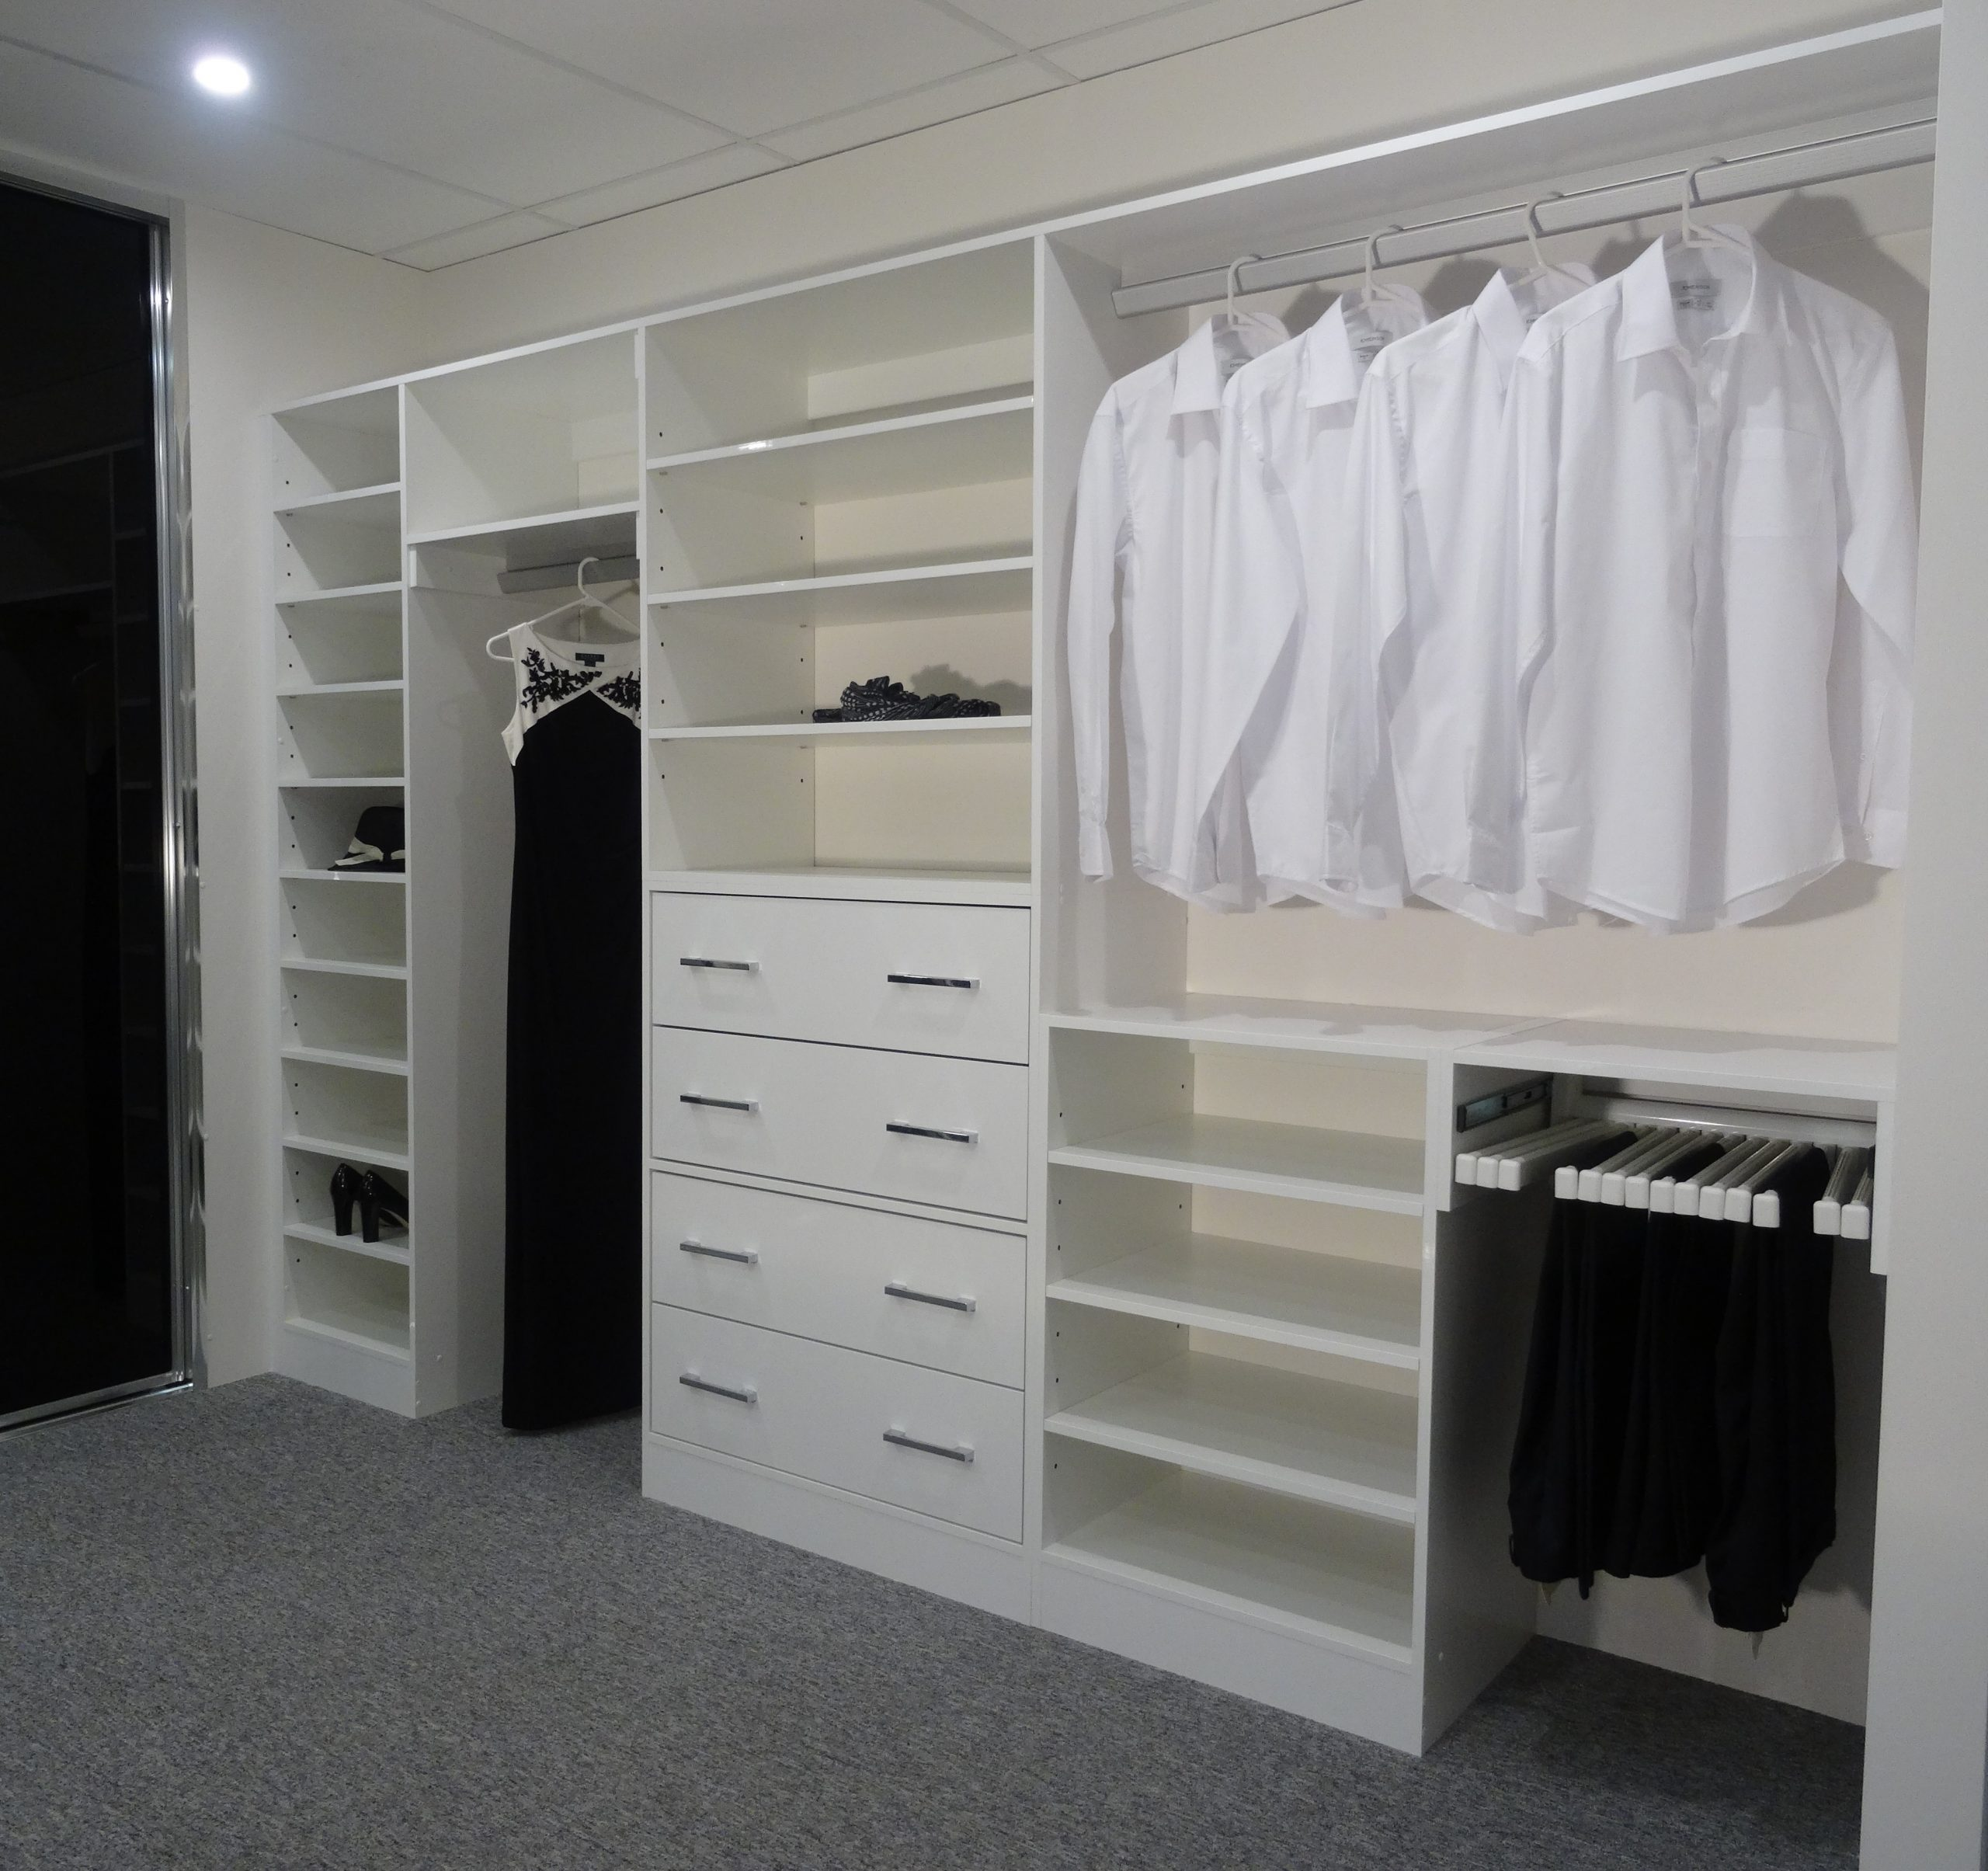 Essential Things For Look Of Your Wardrobe!